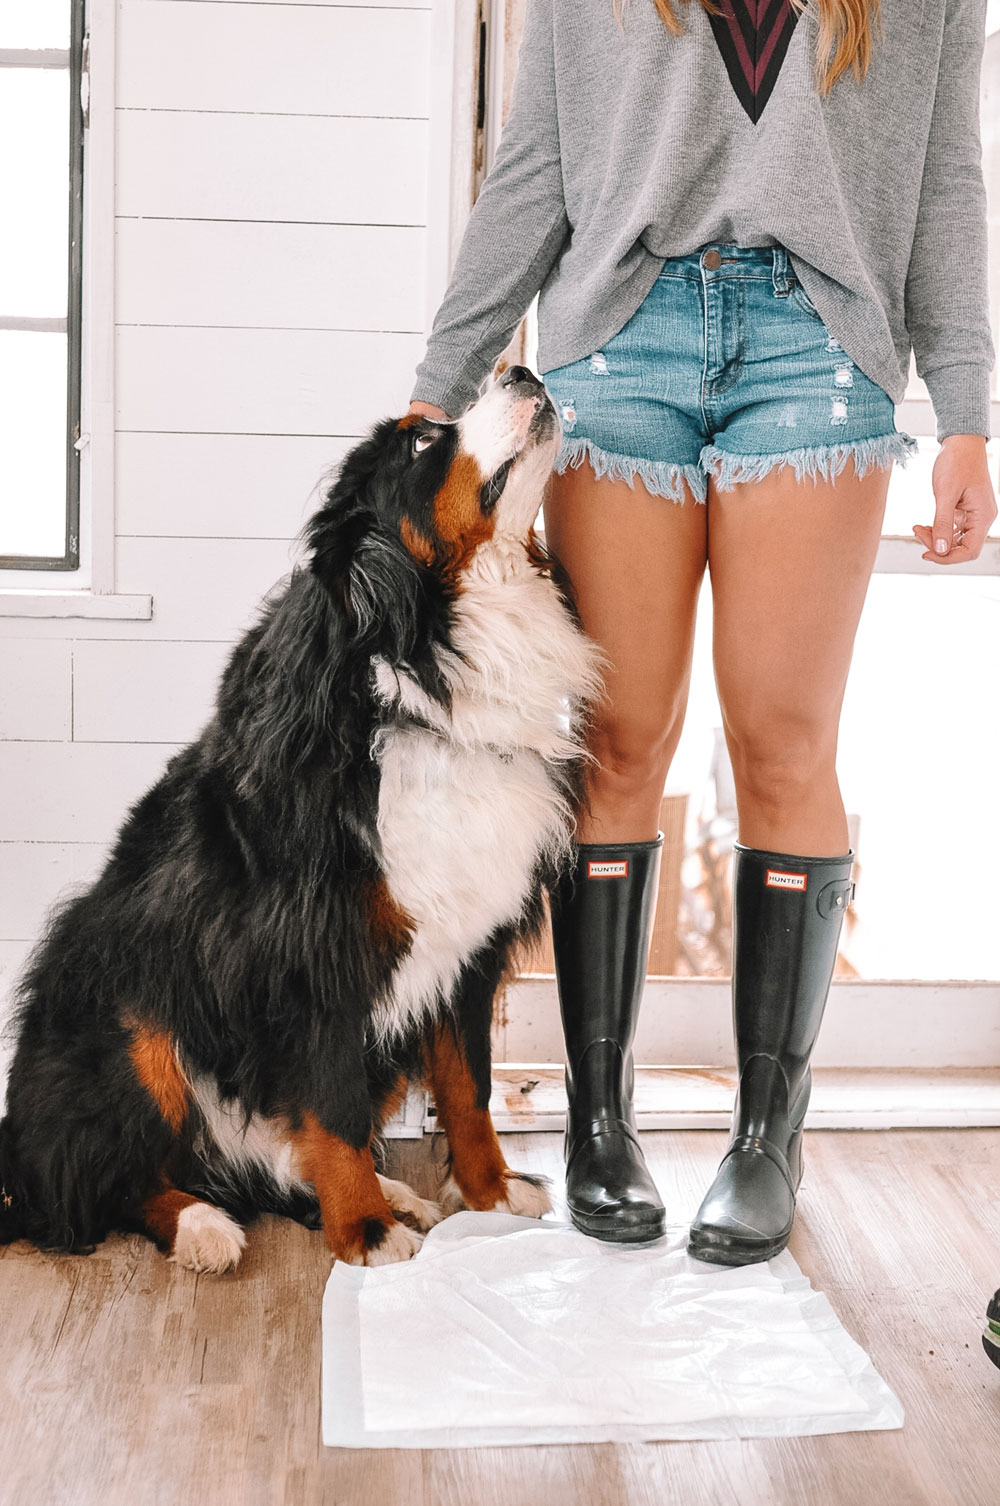 Oklahoma blogger Amanda Martin uses Hartz Dog Pads to keep red dirt out of her house